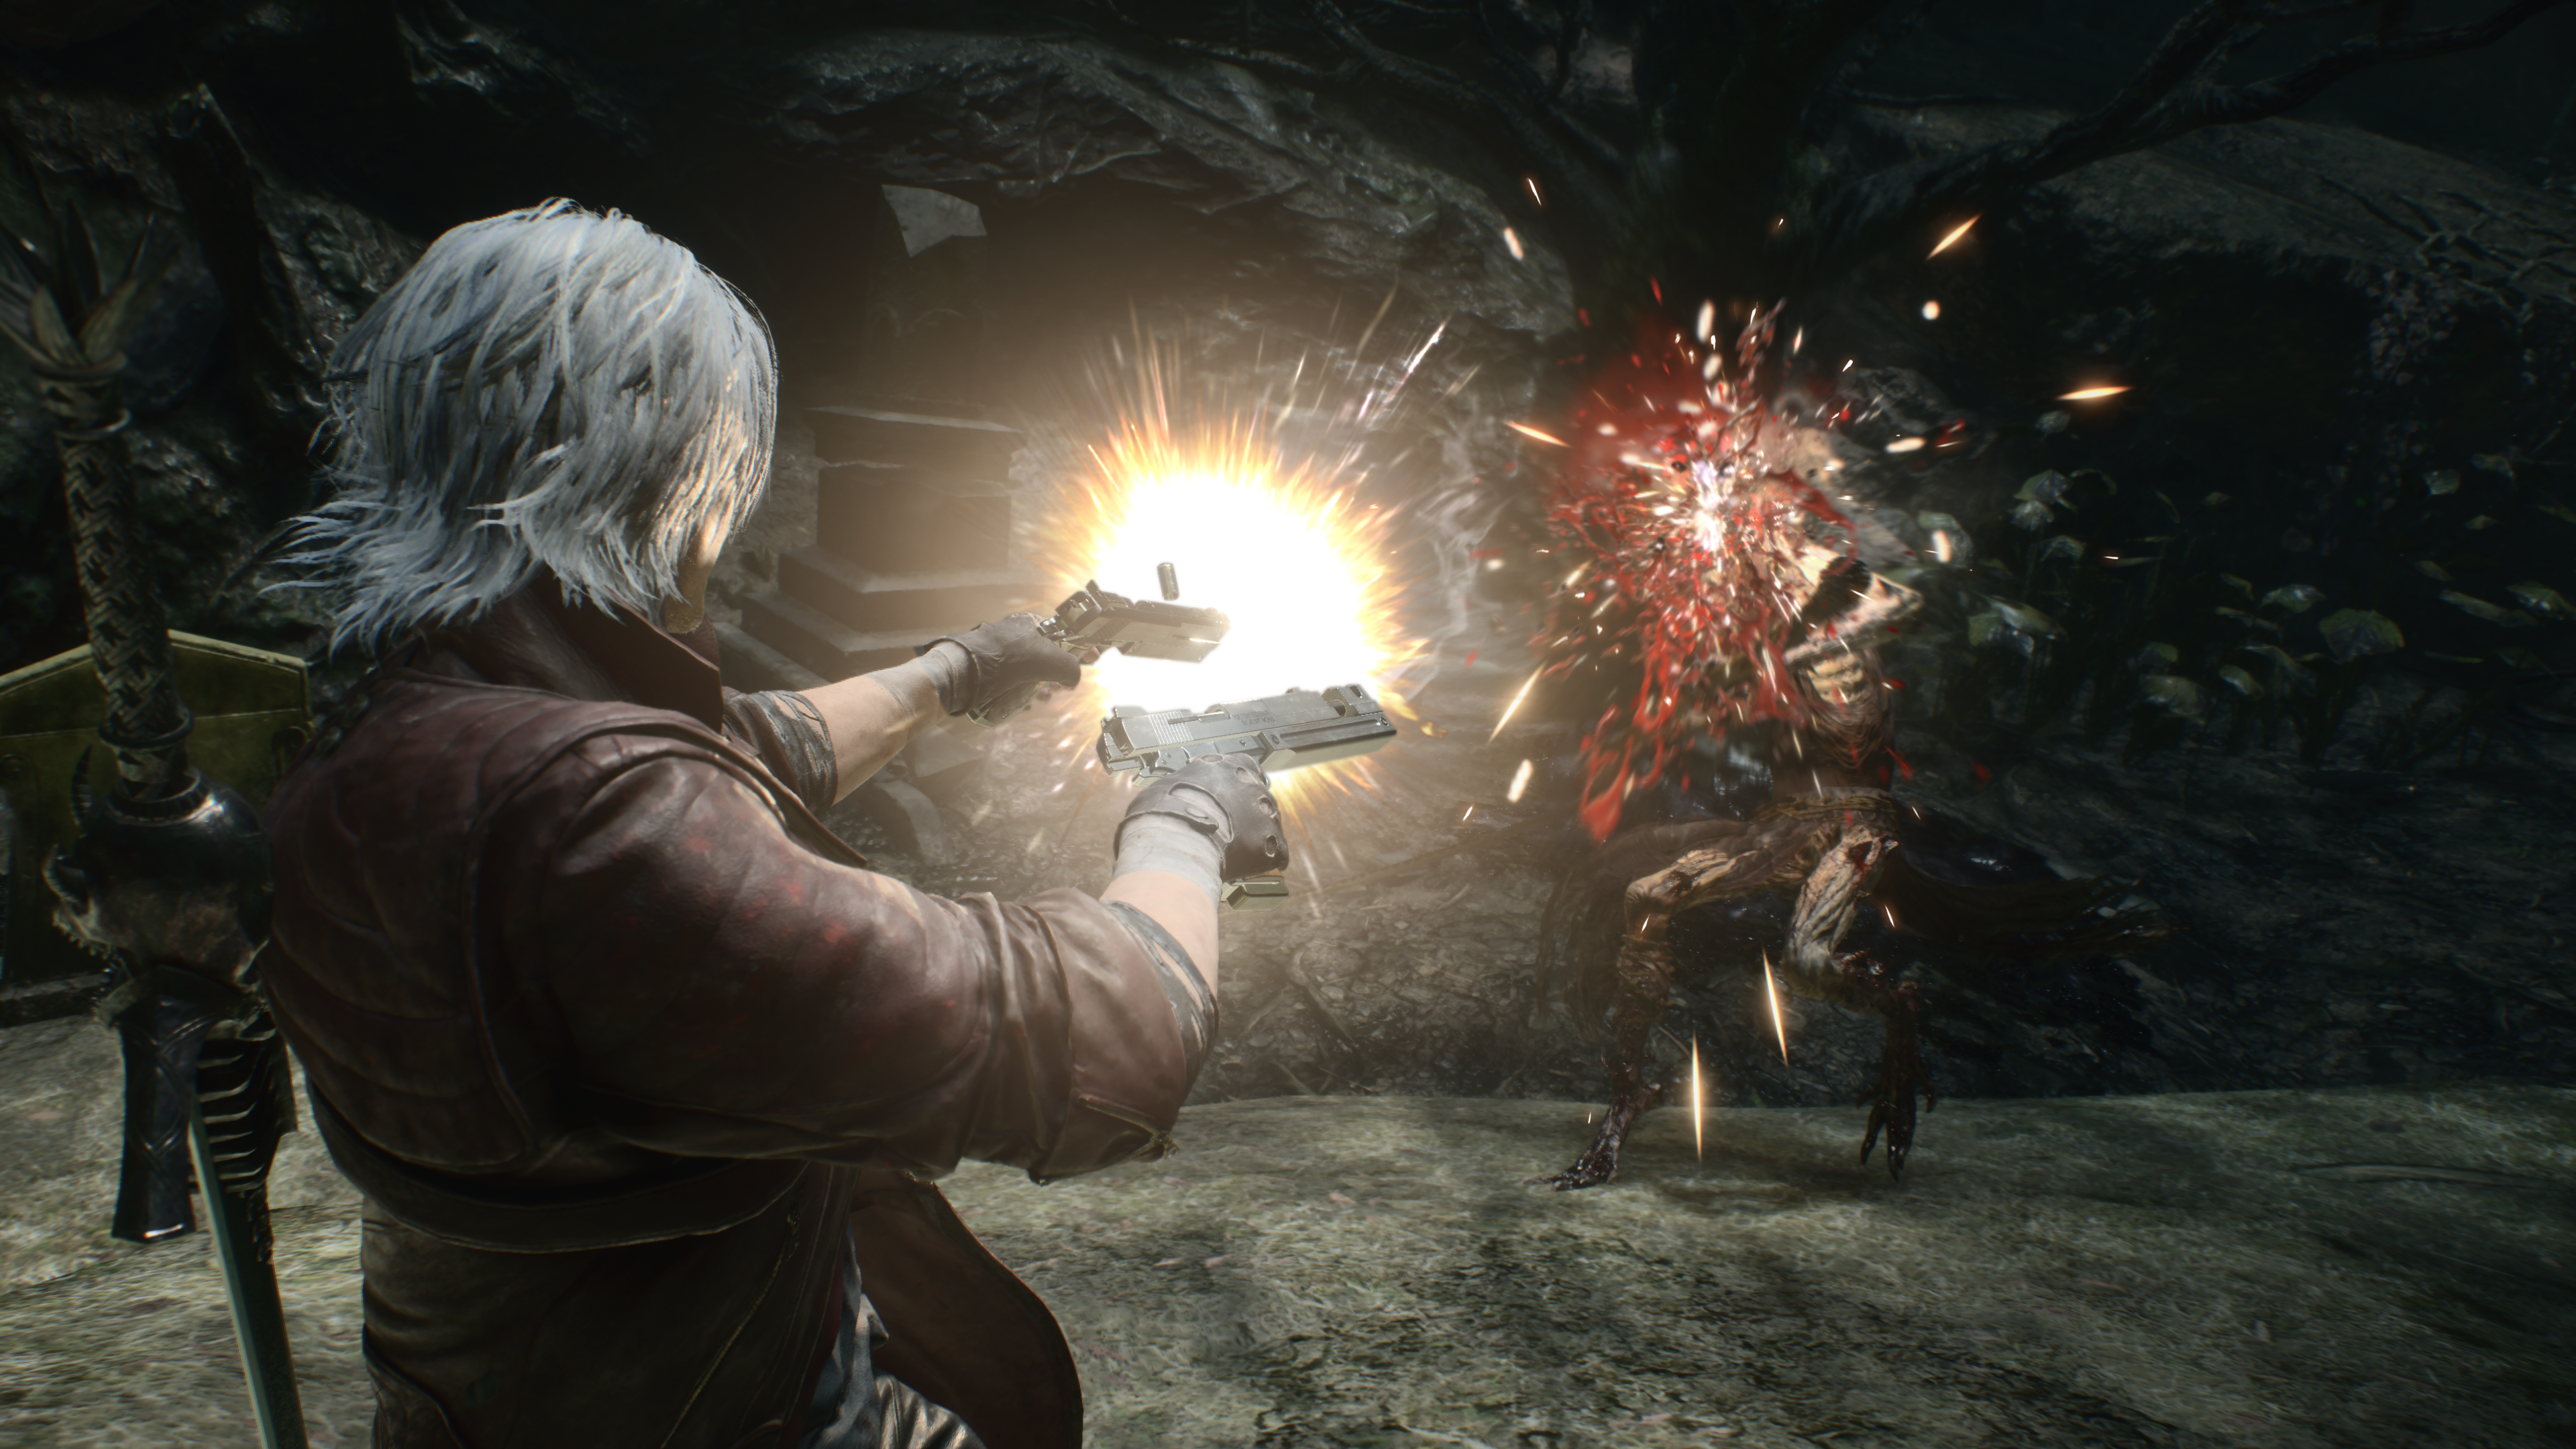 dmc5_screens_dante-02